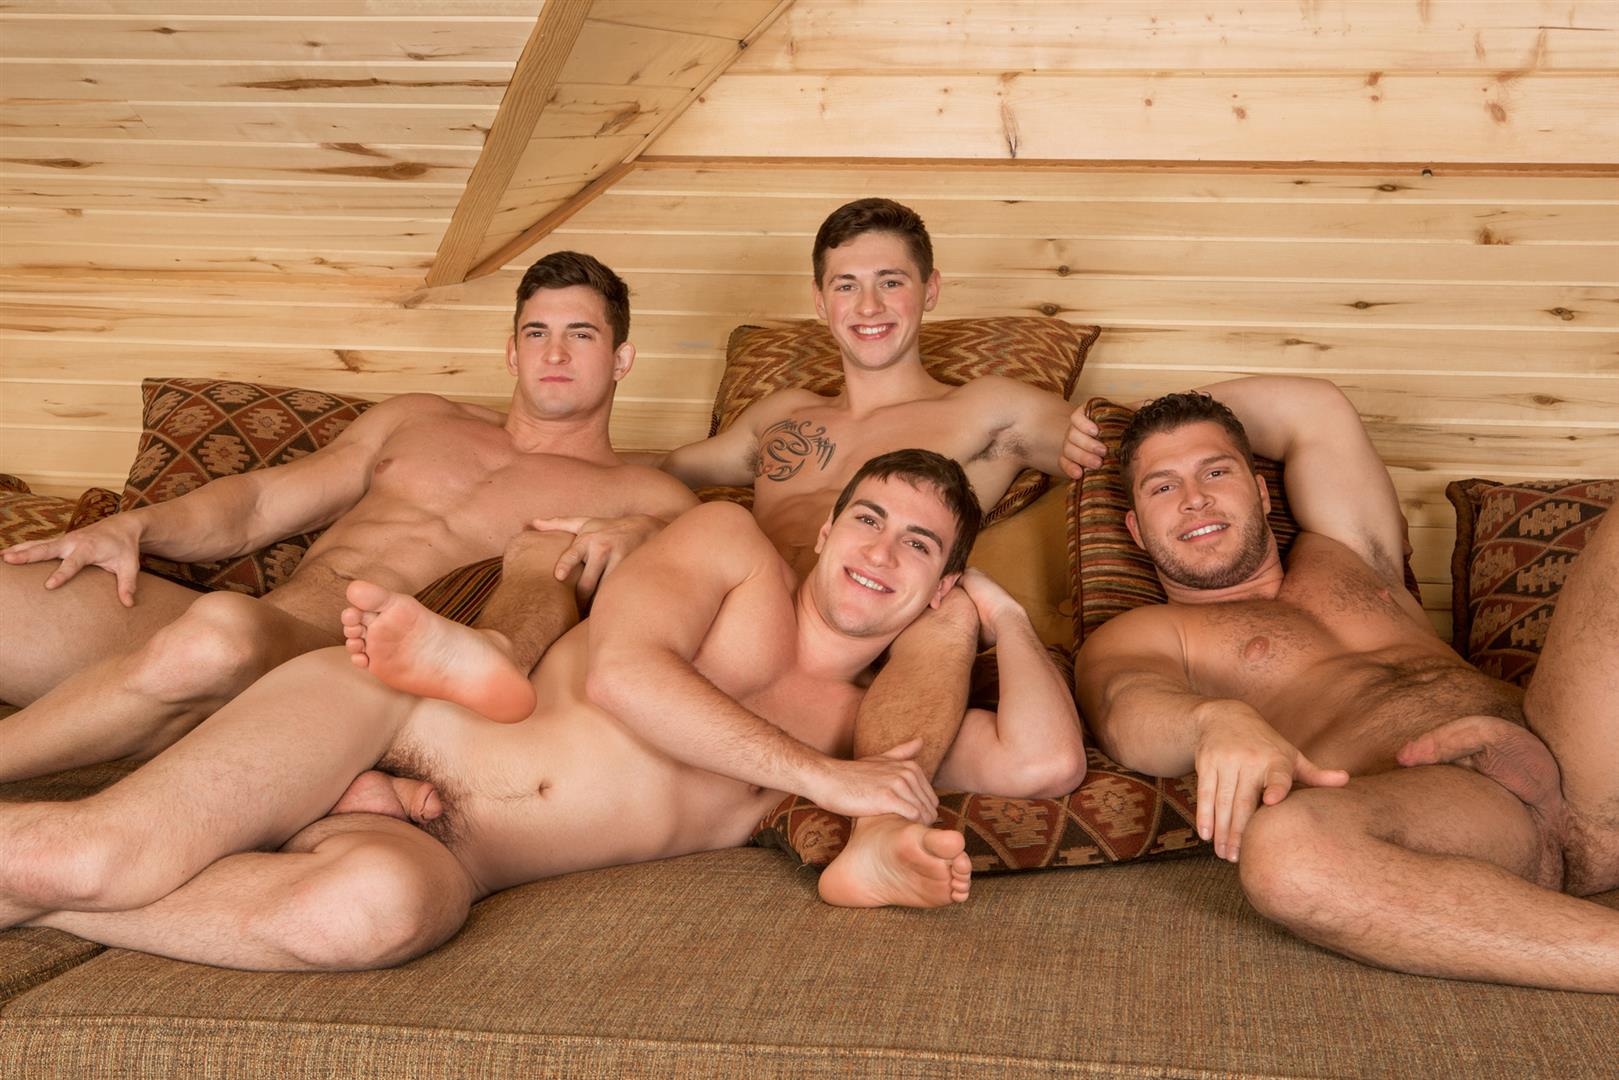 Sean-Cody-Winter-Getaway-Day-4-Big-Dick-Hunks-Fucking-Bareback-Amateur-Gay-Porn-13 Sean Cody Takes The Boys On A 8-Day Bareback Winter Getaway